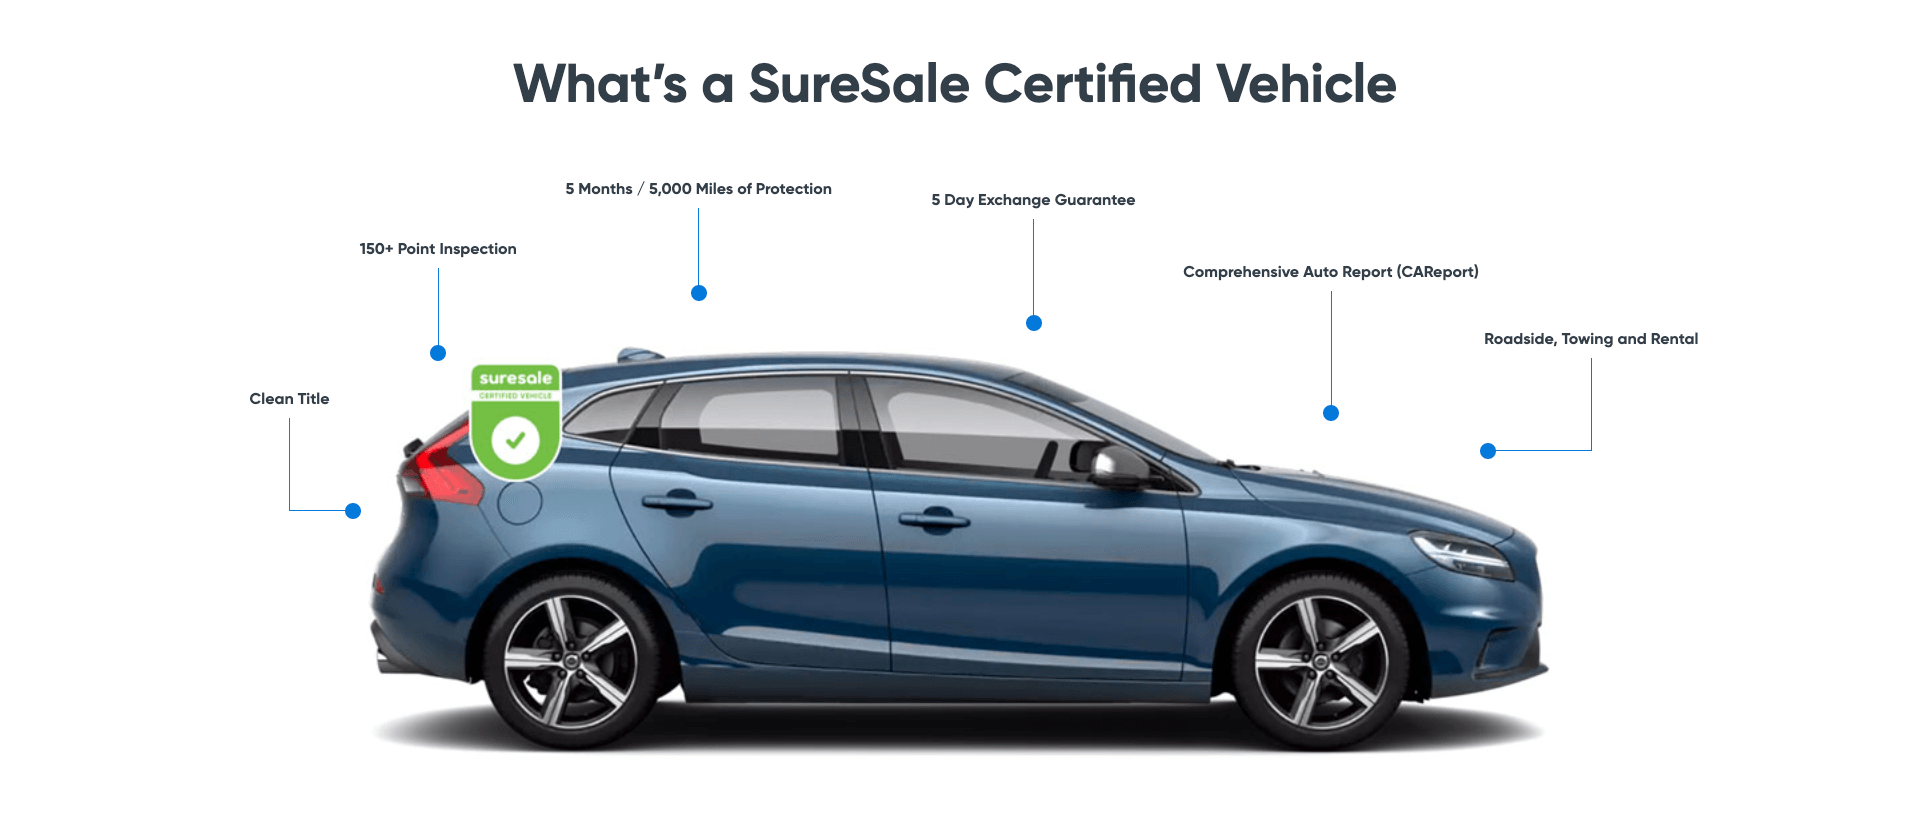 What's a SureSale Certified Vehicle